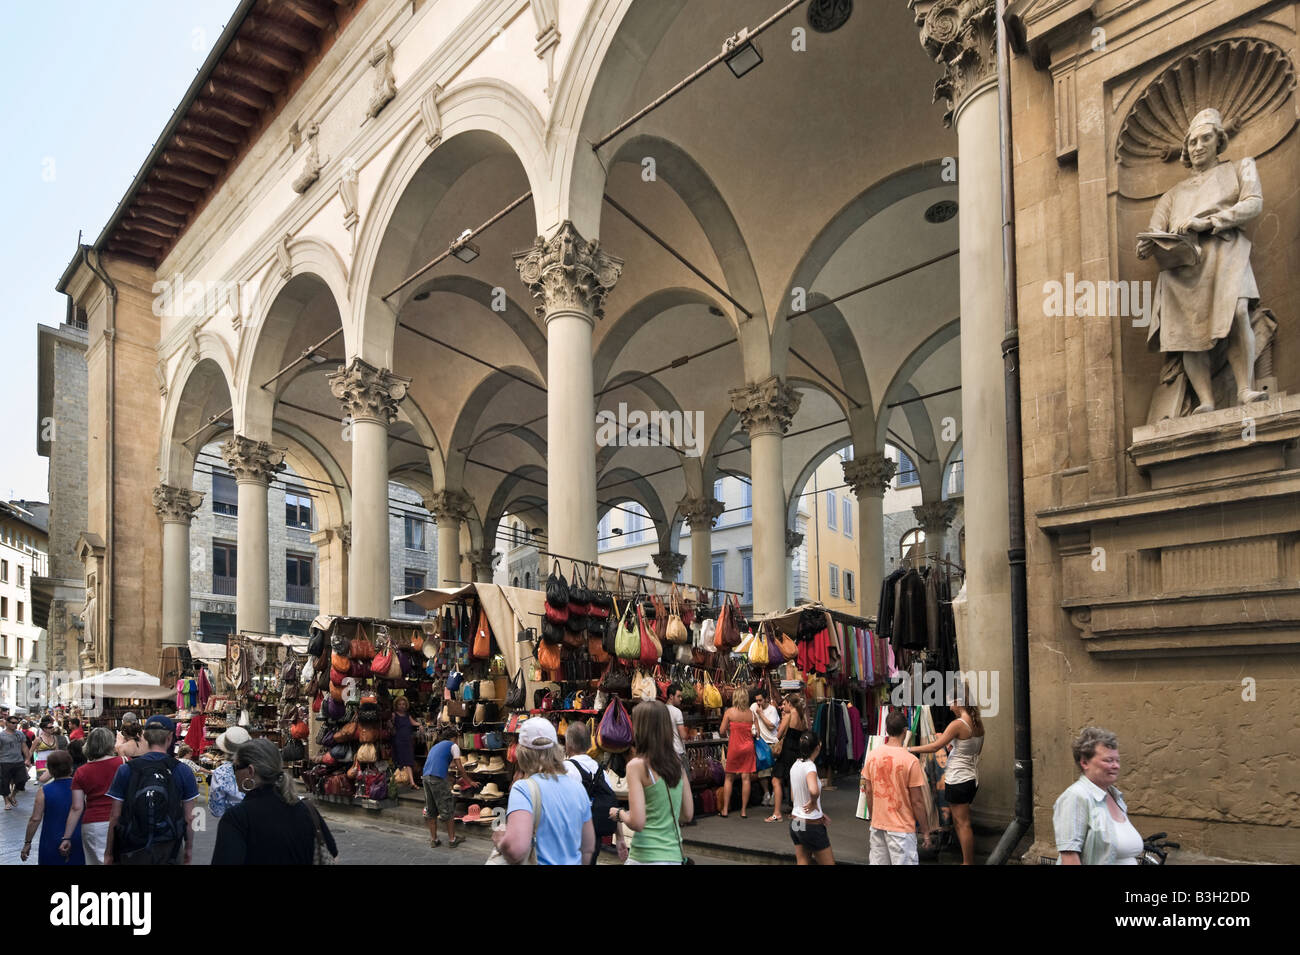 Open air market in Piazza del Mercato Nuovo in the historic centre, Florence, Tuscany, Italy - Stock Image